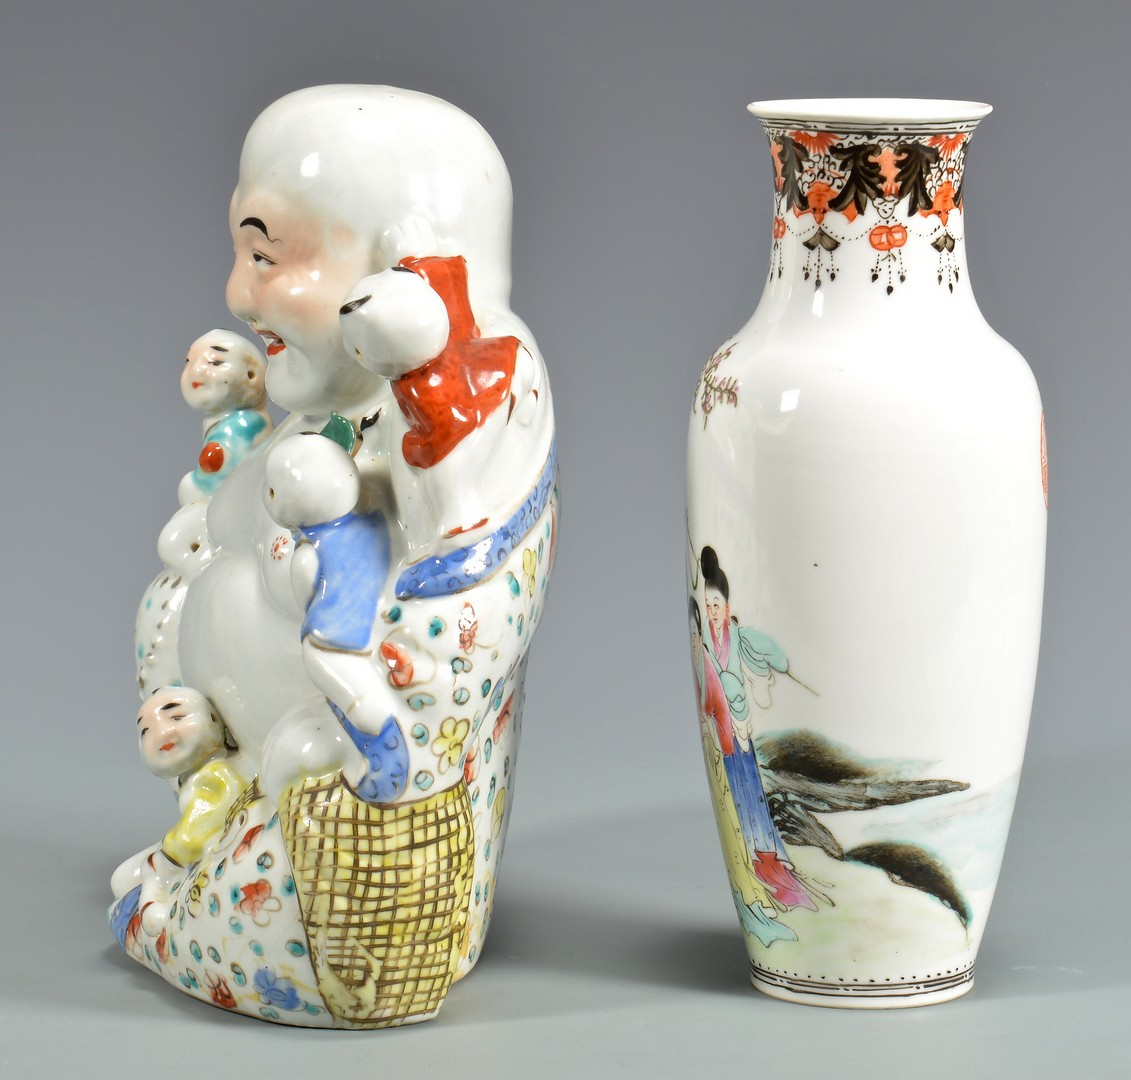 Lot 4010139: Republic Vase and Laughing Buddha with children